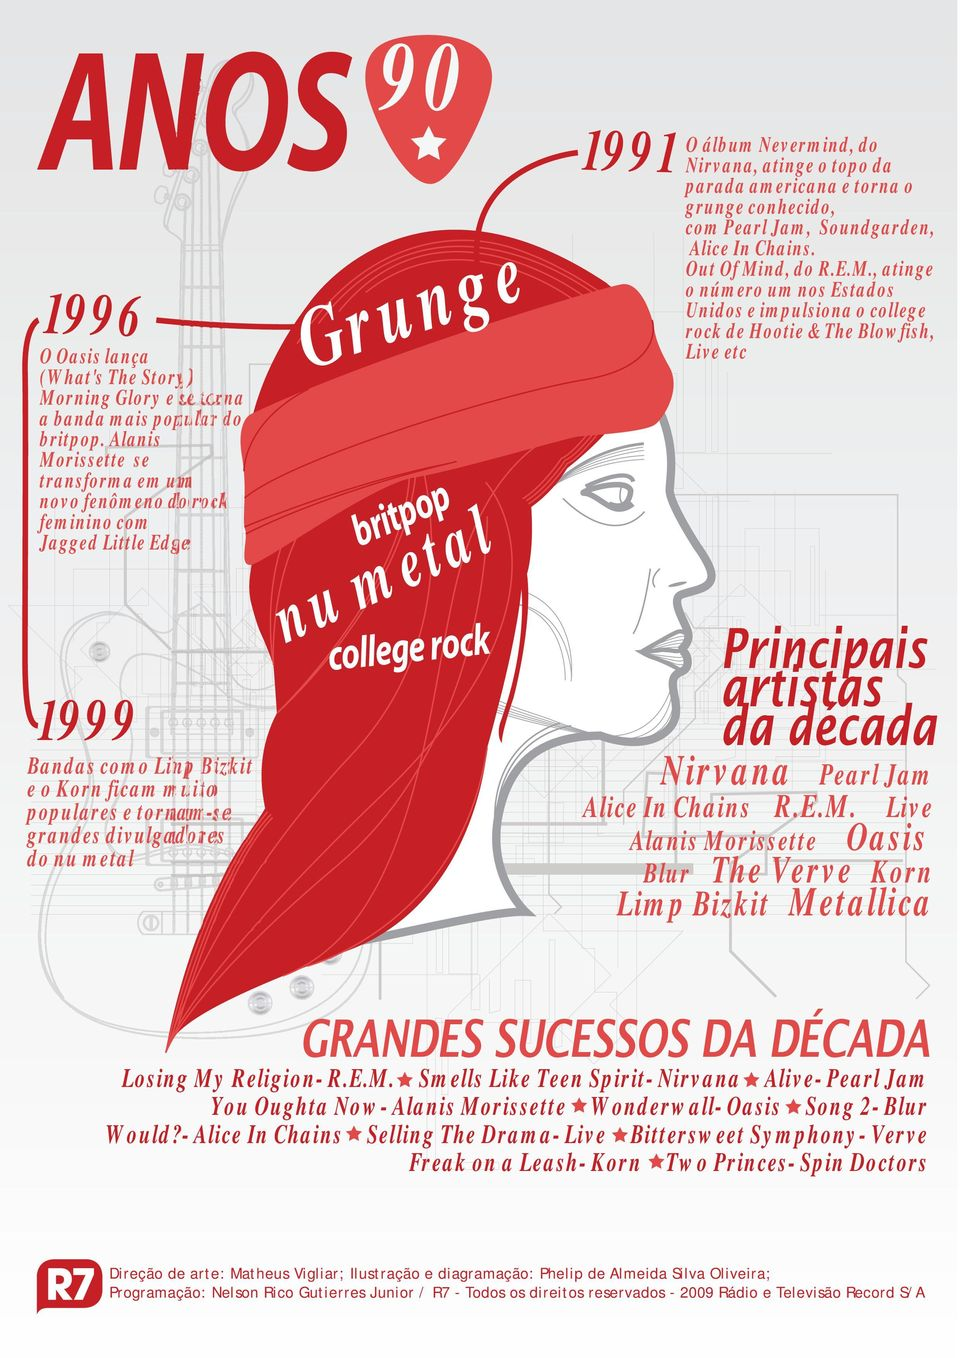 Grunge britpop nu metal college rock 1991 O álbum Nevermind, do Nirvana, atinge o topo da parada americana e torna o grunge conhecido, com Pearl Jam, Soundgarden, Alice In Chains. Out Of Mind, do R.E.